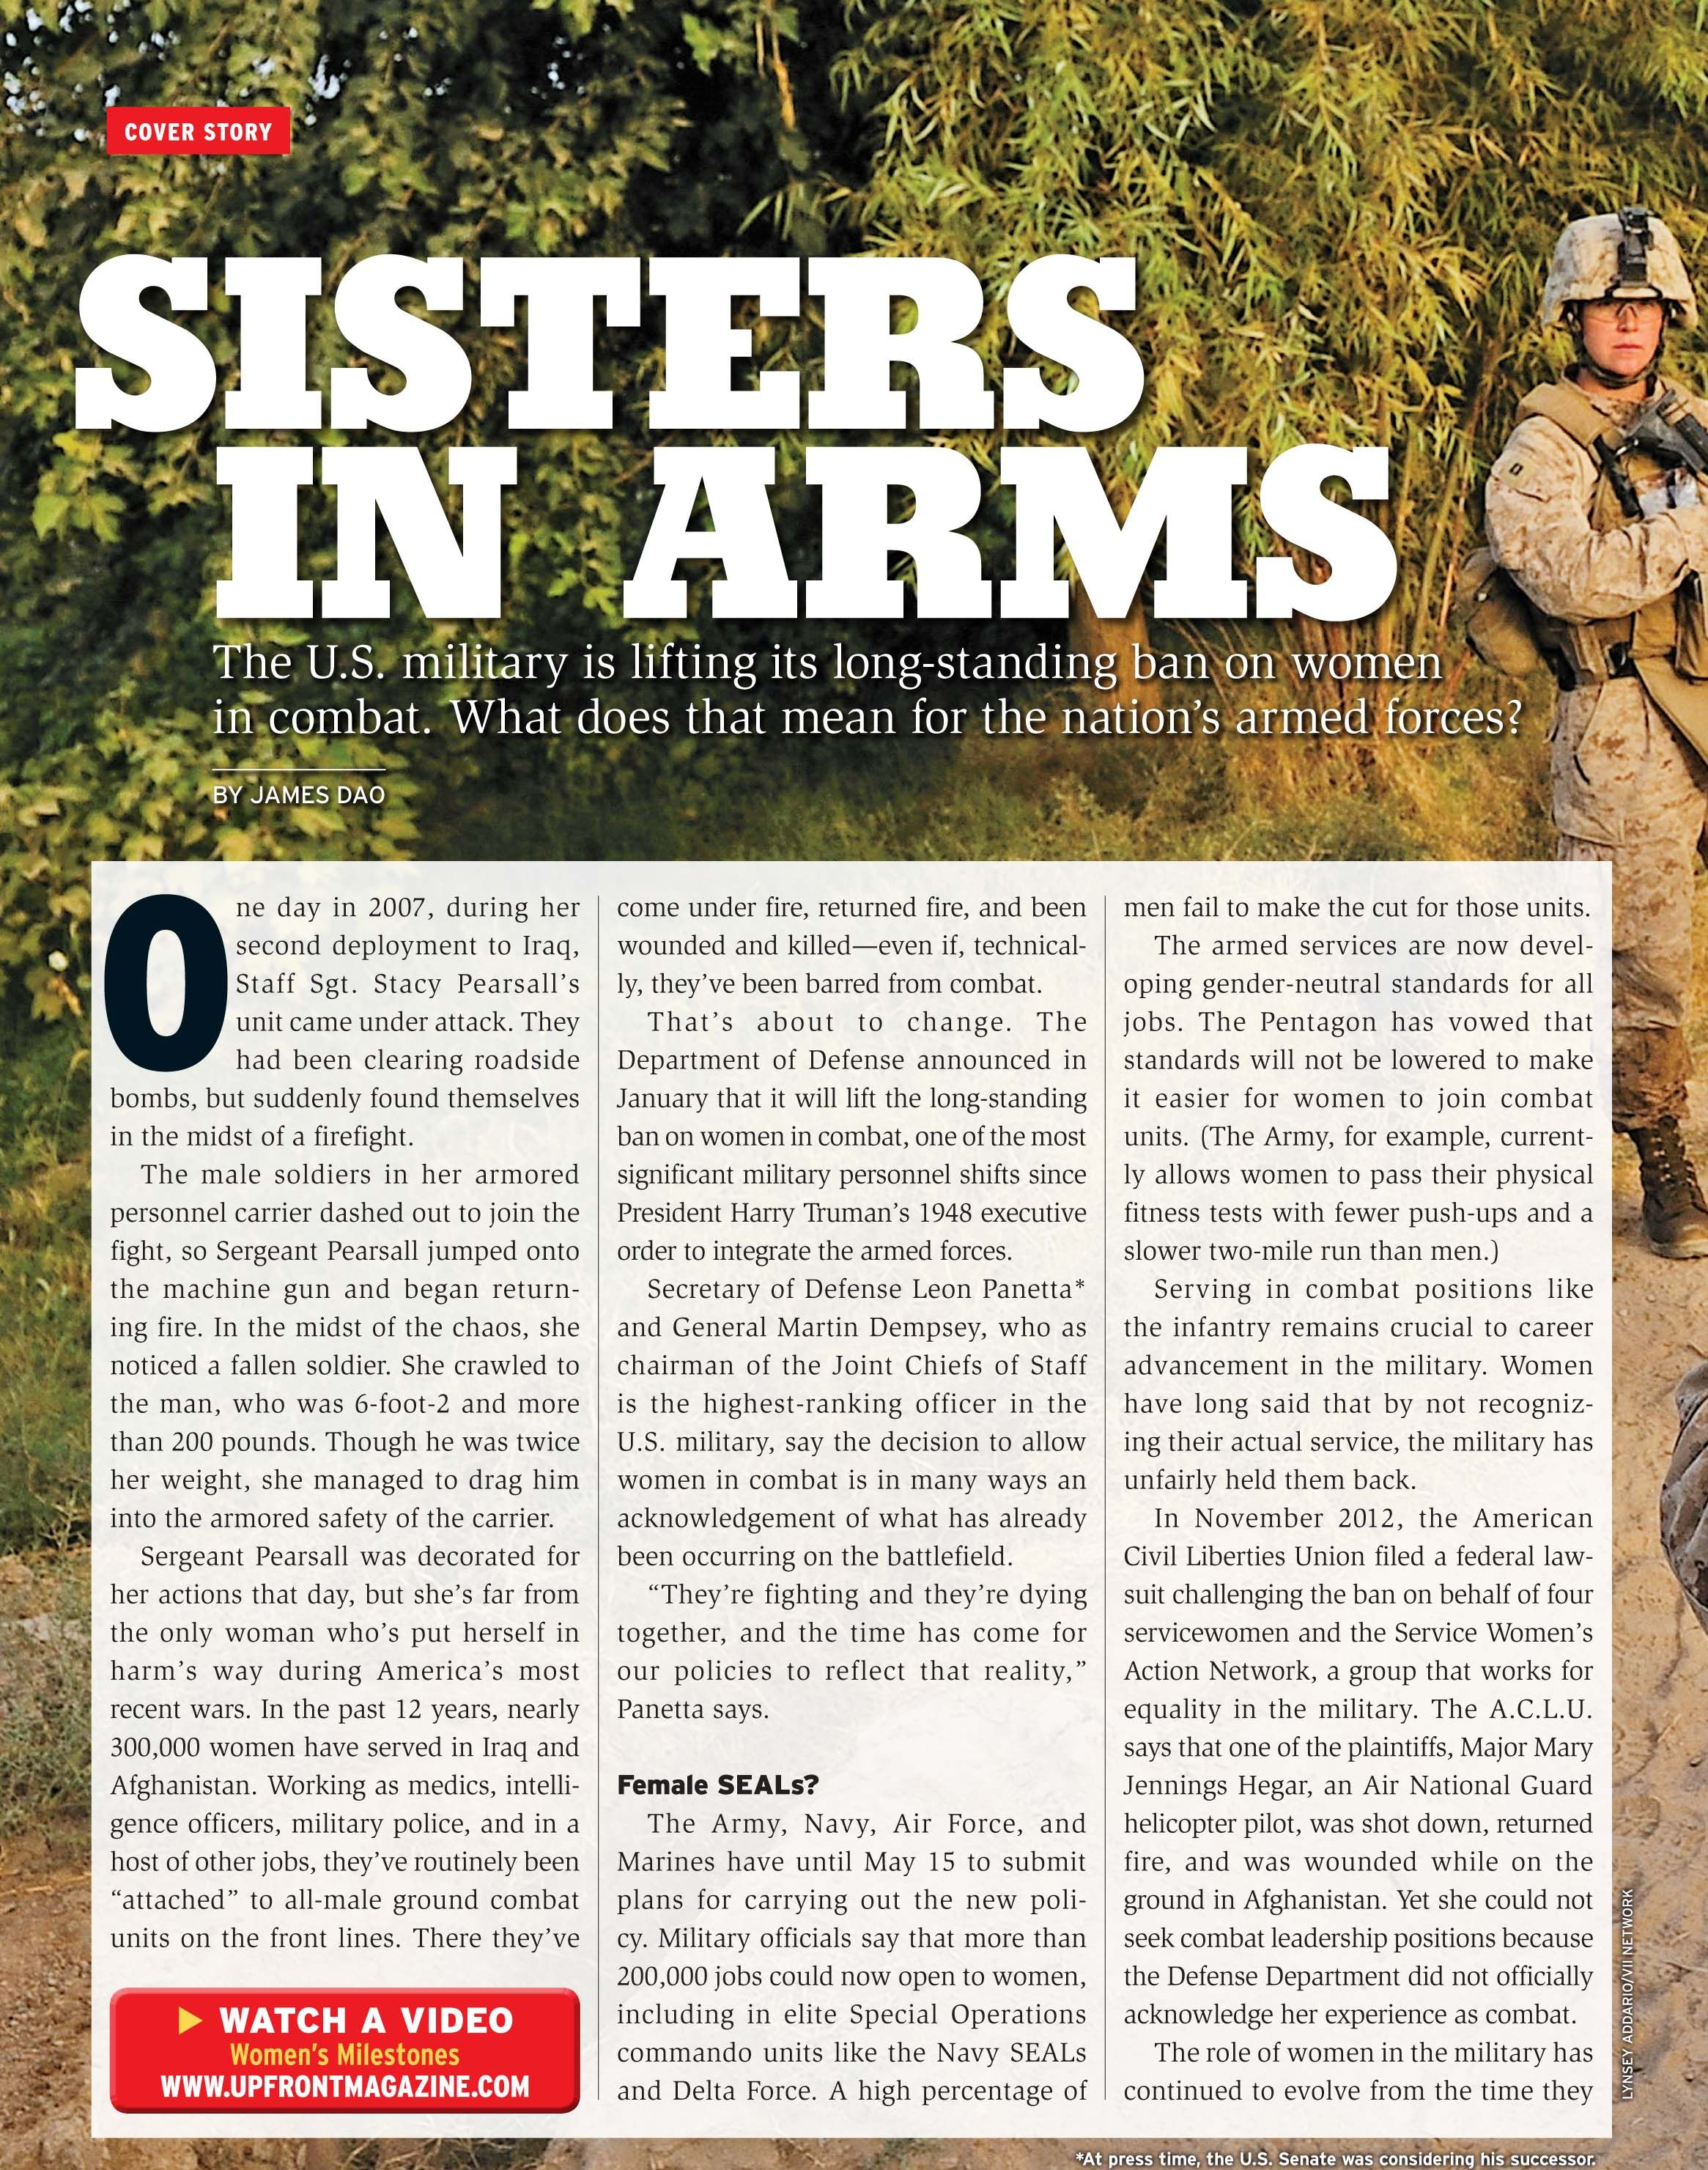 March 11 S Sisters In Arms Article In The New York